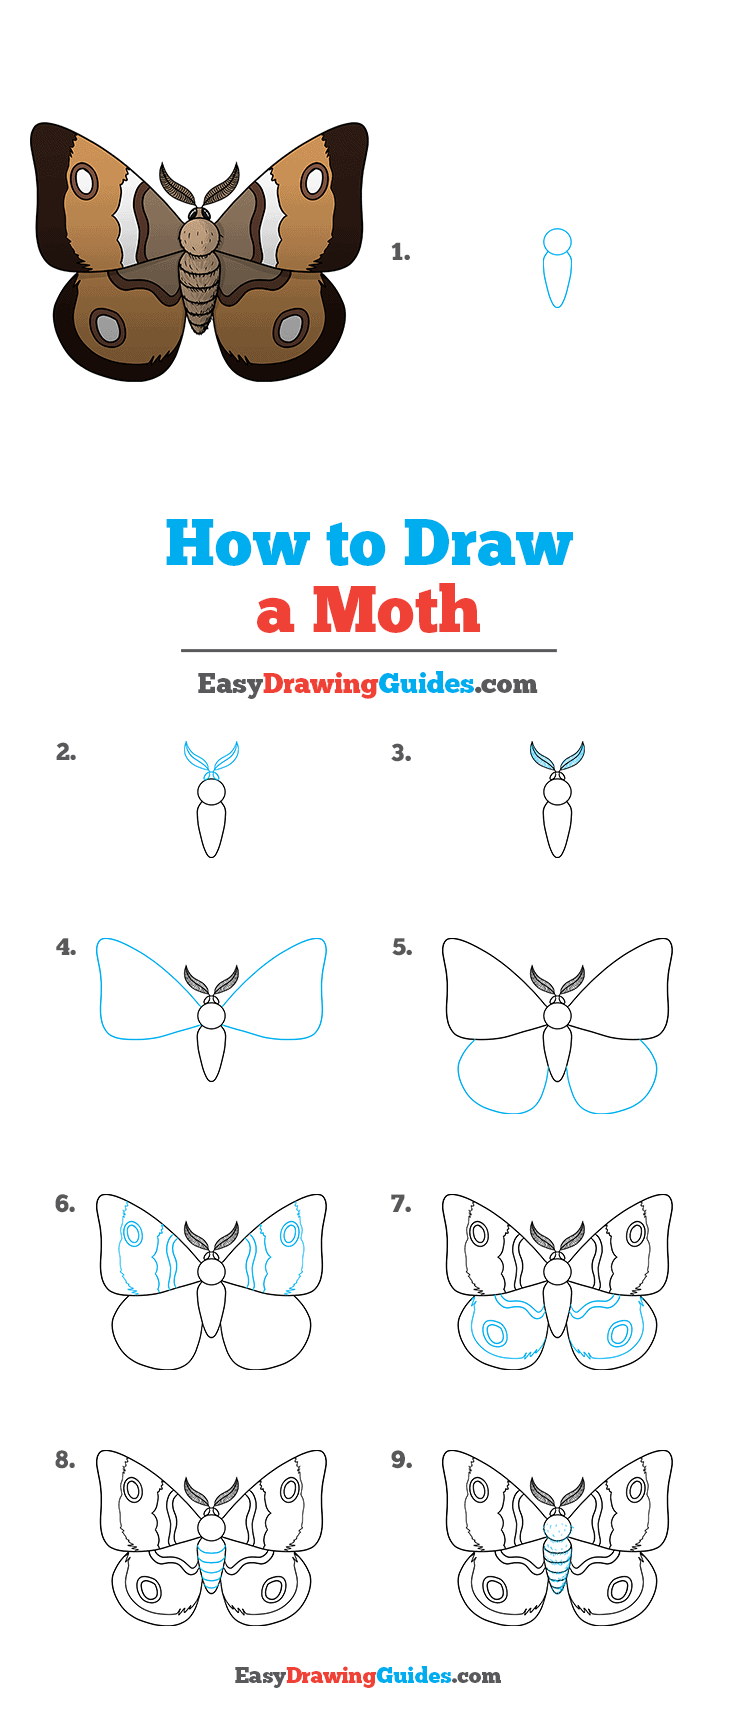 How to Draw a Moth Step by Step Tutorial Image